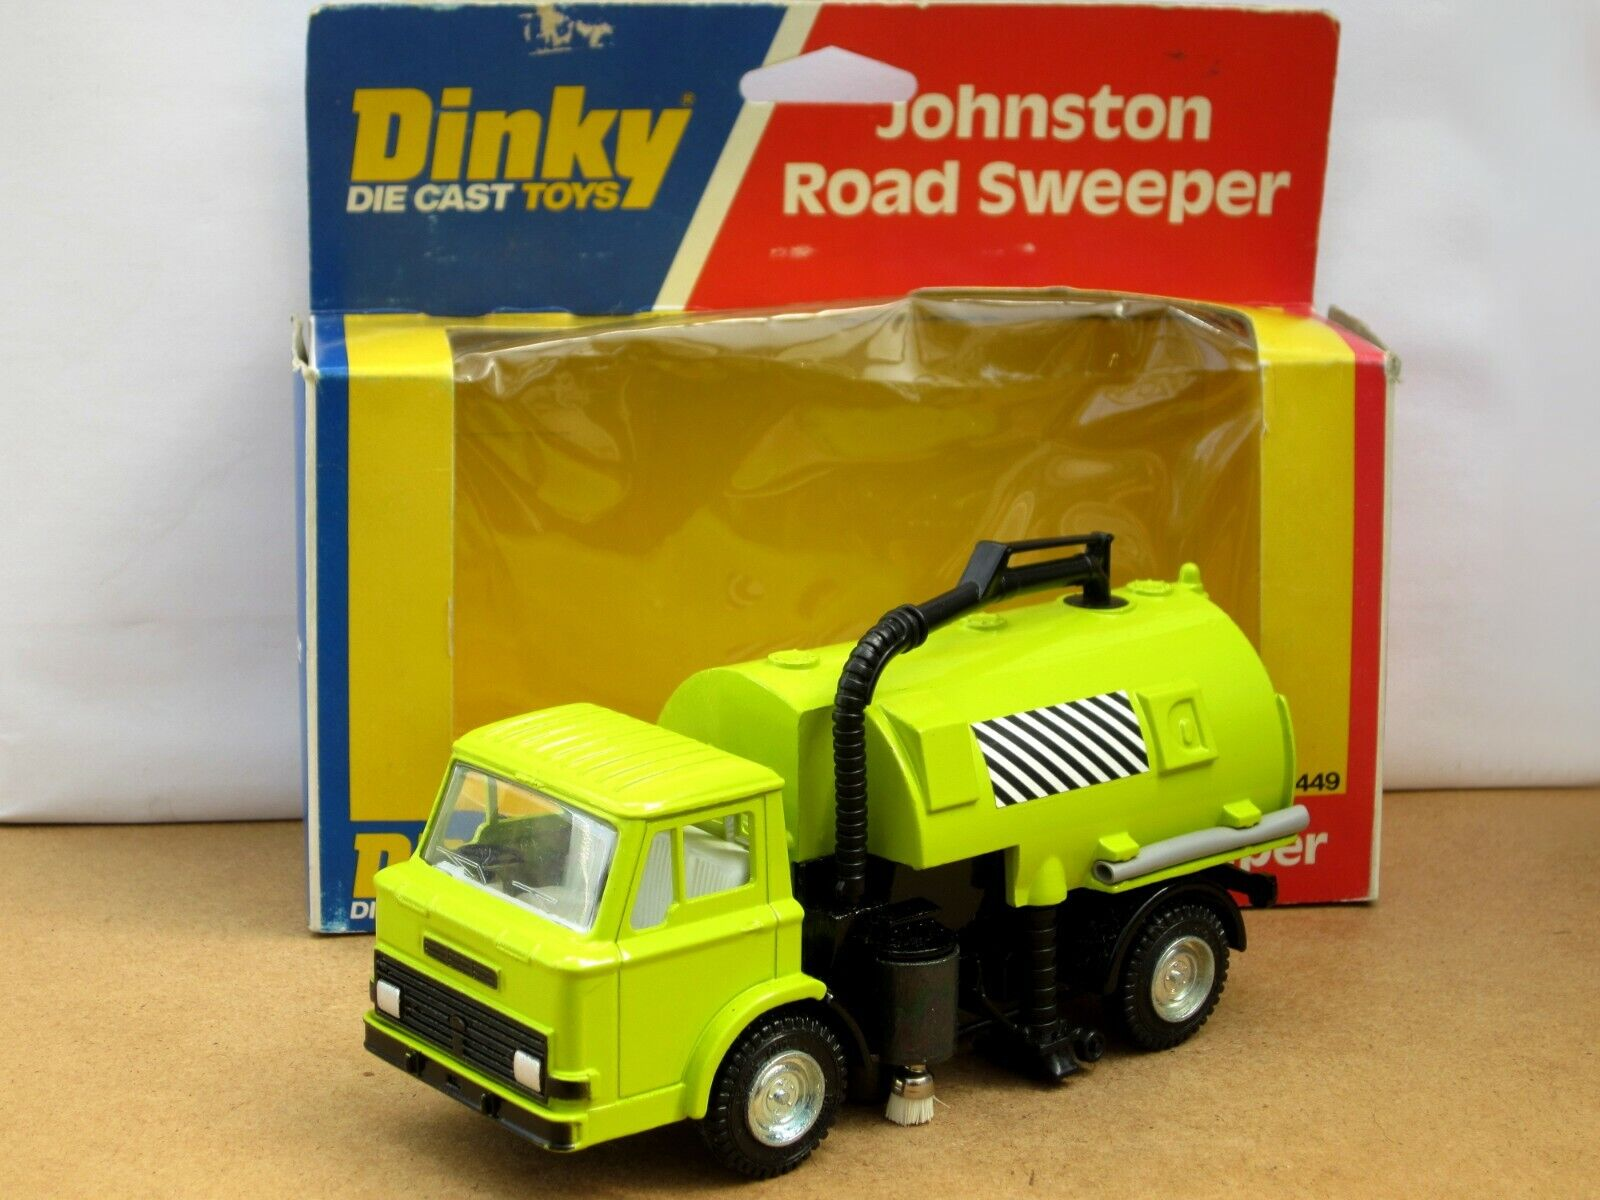 DINKY TOYS 449 FORD SERIE D Johnson ROAD SWEEPER-Boxed